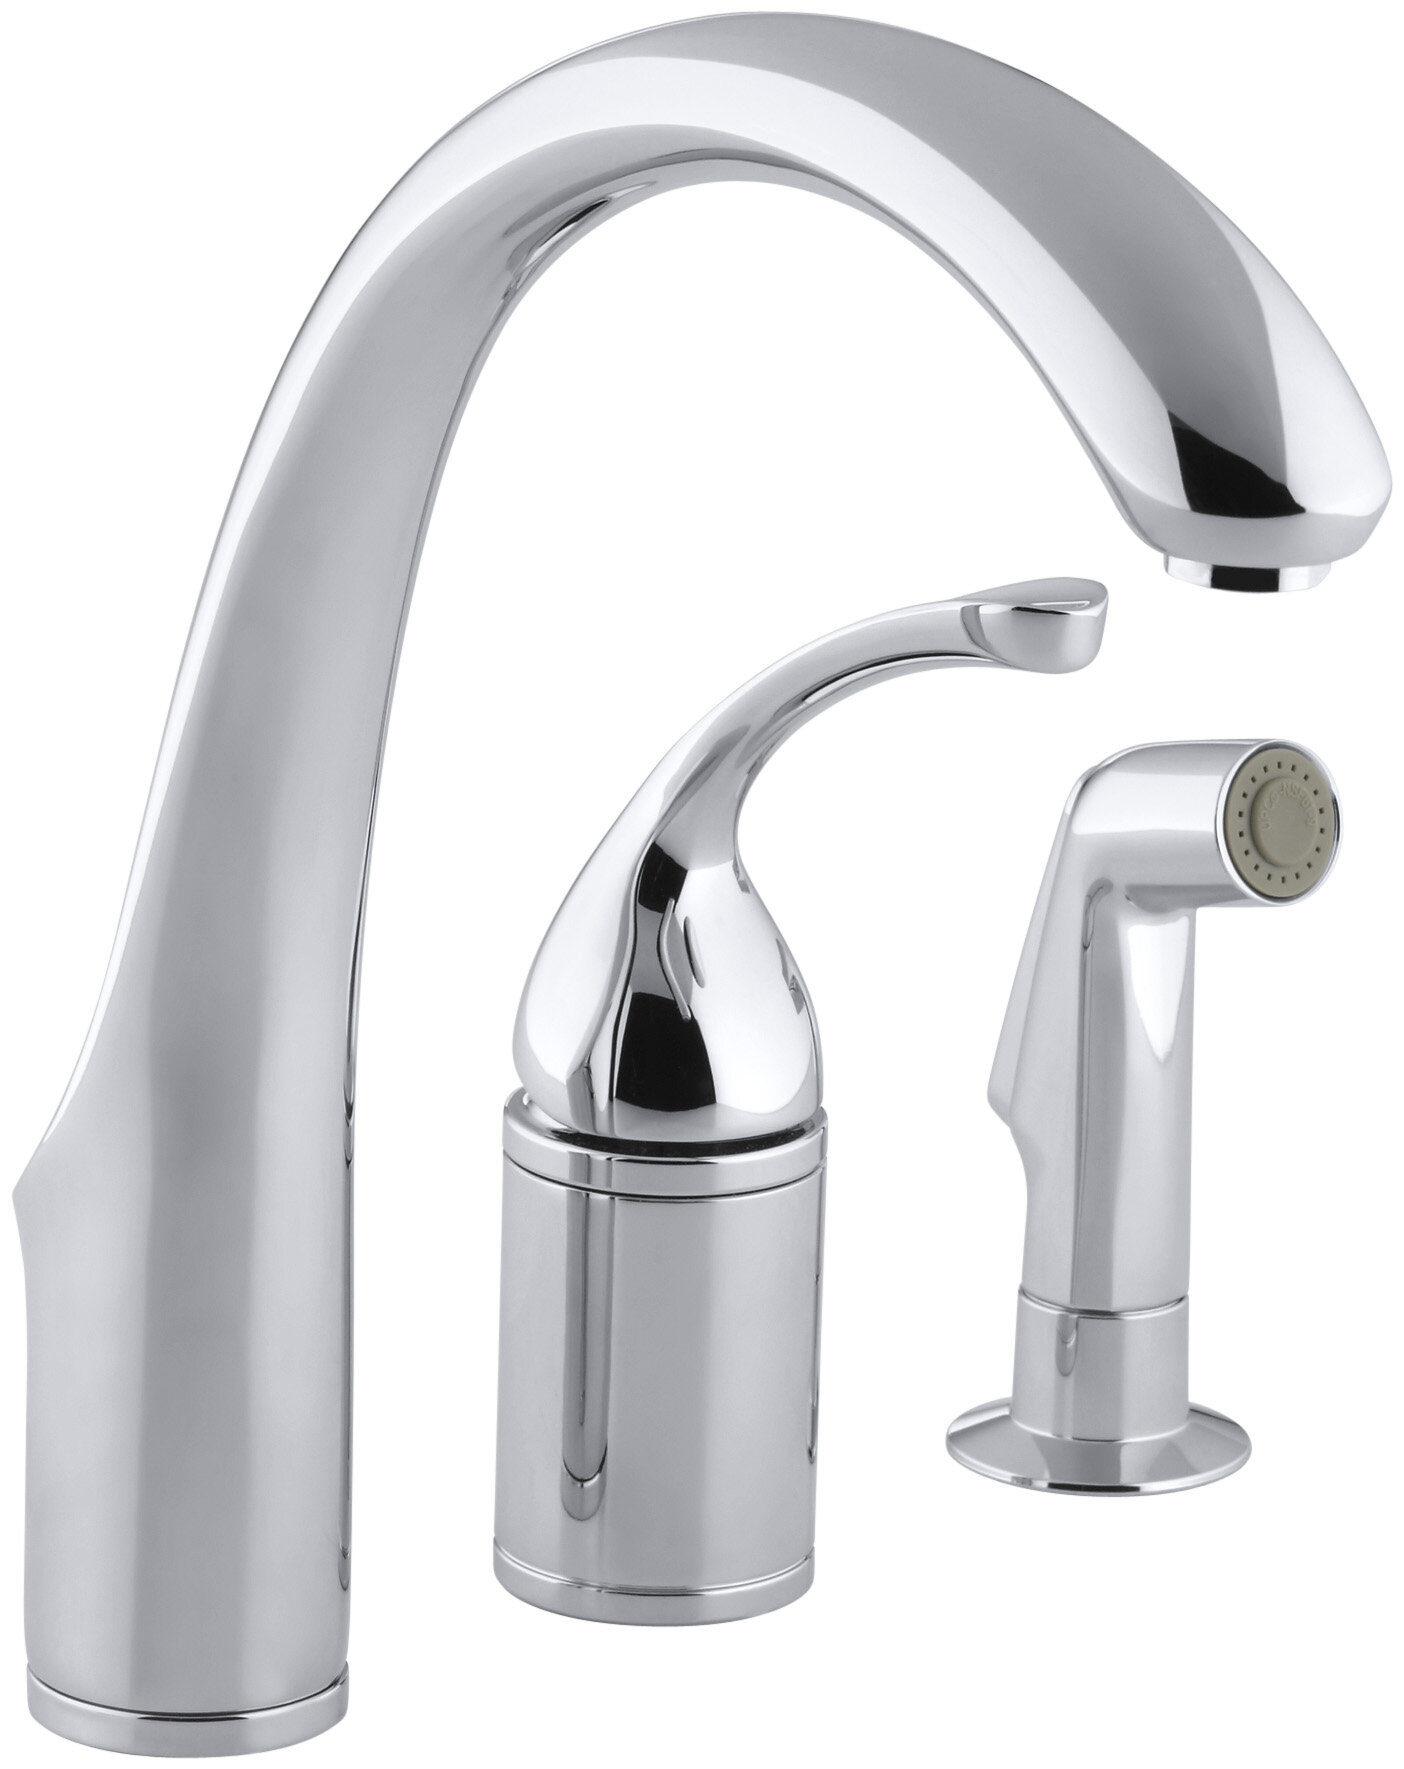 K 10430 Bn Bv Cp Kohler Forté 3 Hole Remote Valve Kitchen Sink Faucet With 9 Spout Matching Finish Sidespray Reviews Wayfair